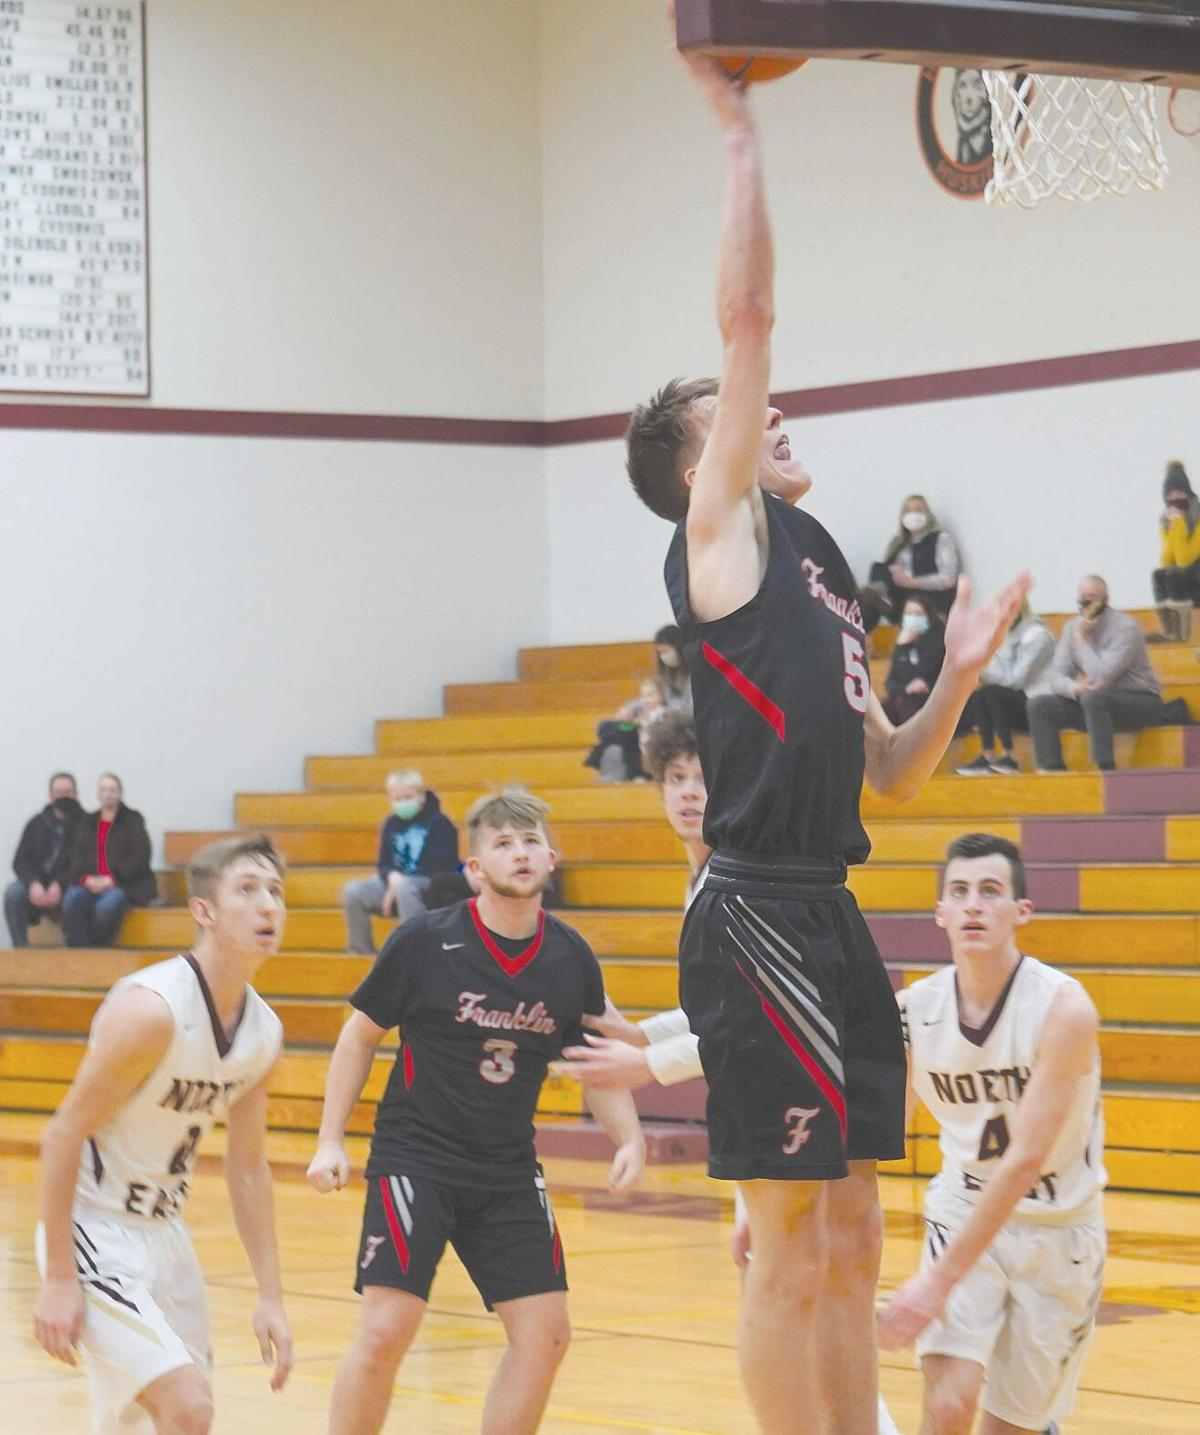 Knights drain 17 treys in 88-58 rout of Grape Pickers